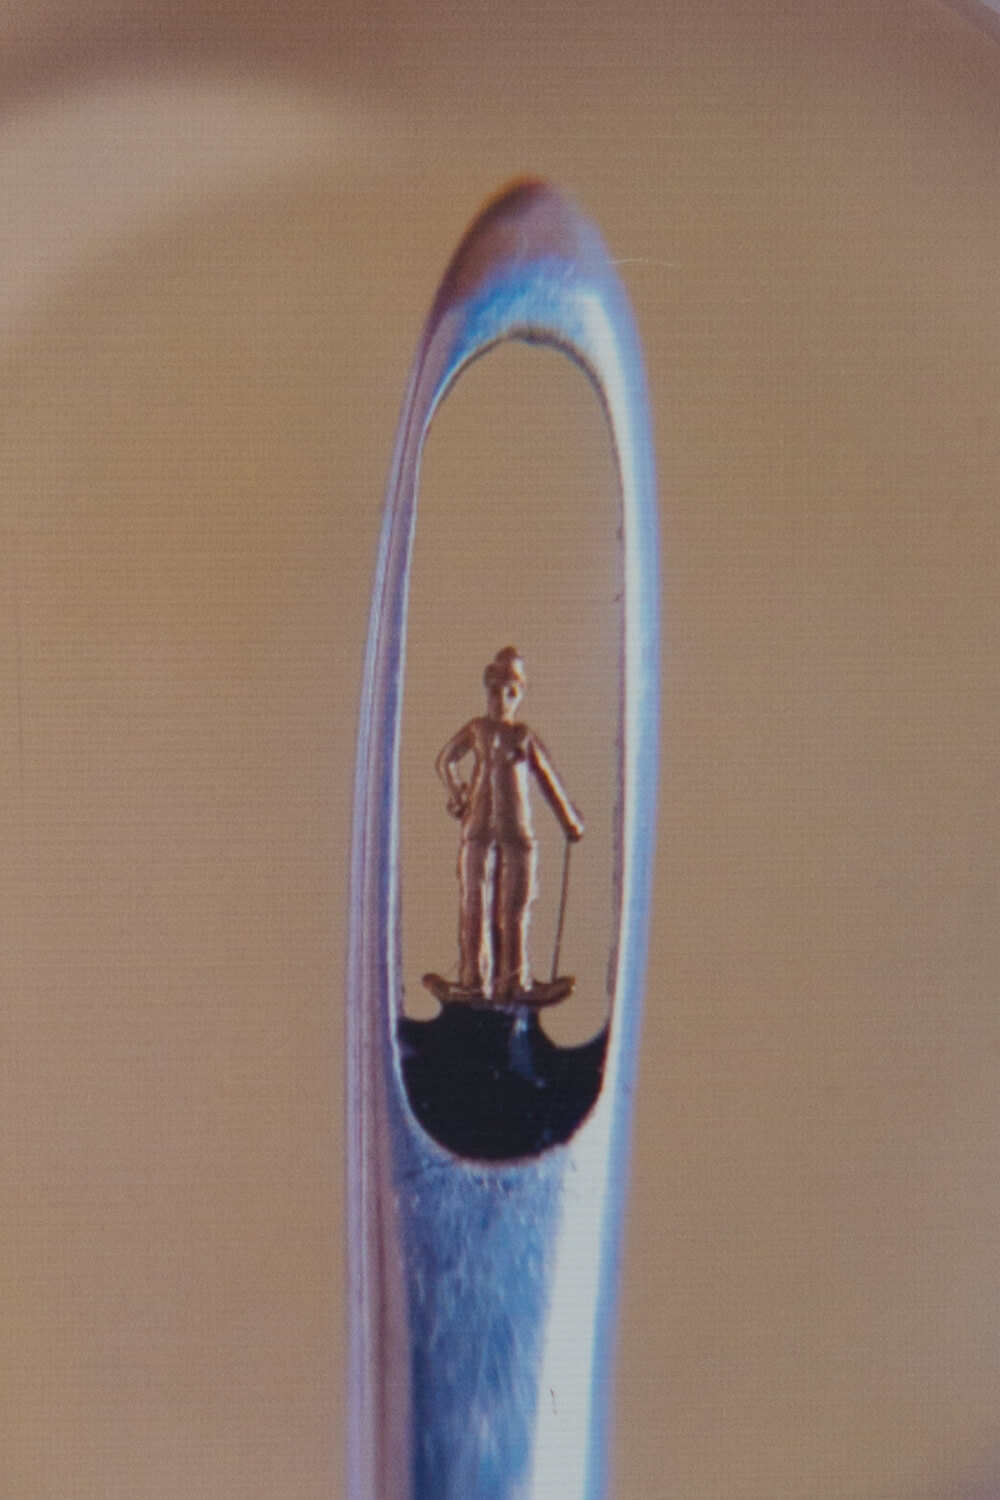 The world's smallest statue of Charlie Chaplin is made of gold, fits in the eye of a needle, and on display at Ter-Ghazaryans' Micro Art Museum in Yerevan, Armenia